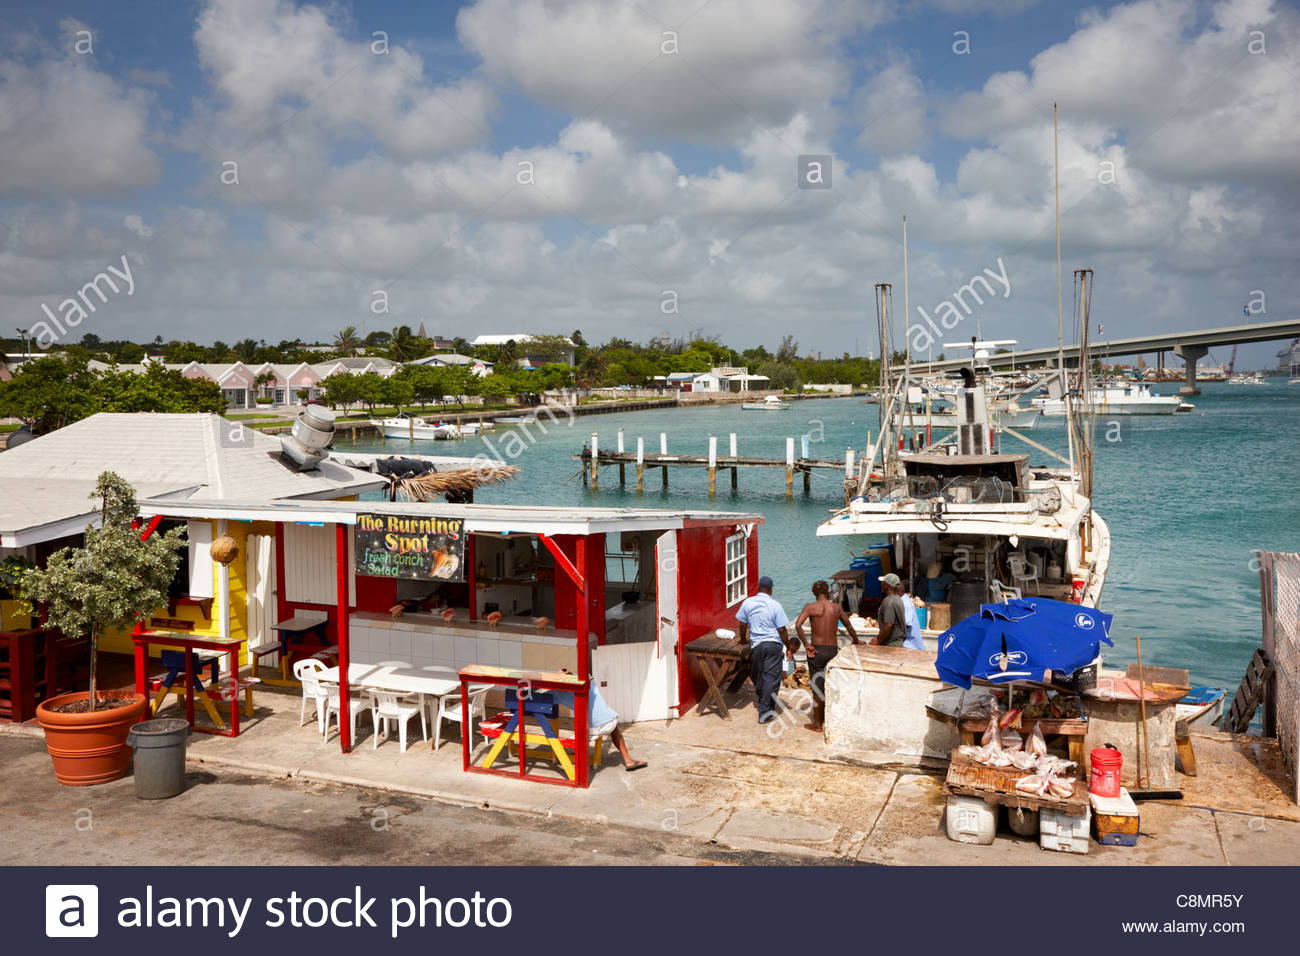 Arawak Cay New Providence and Paradise Islands, Bahamas Nassau Restaurant Stock Photos & Bahamas Nassau Restaurant ...